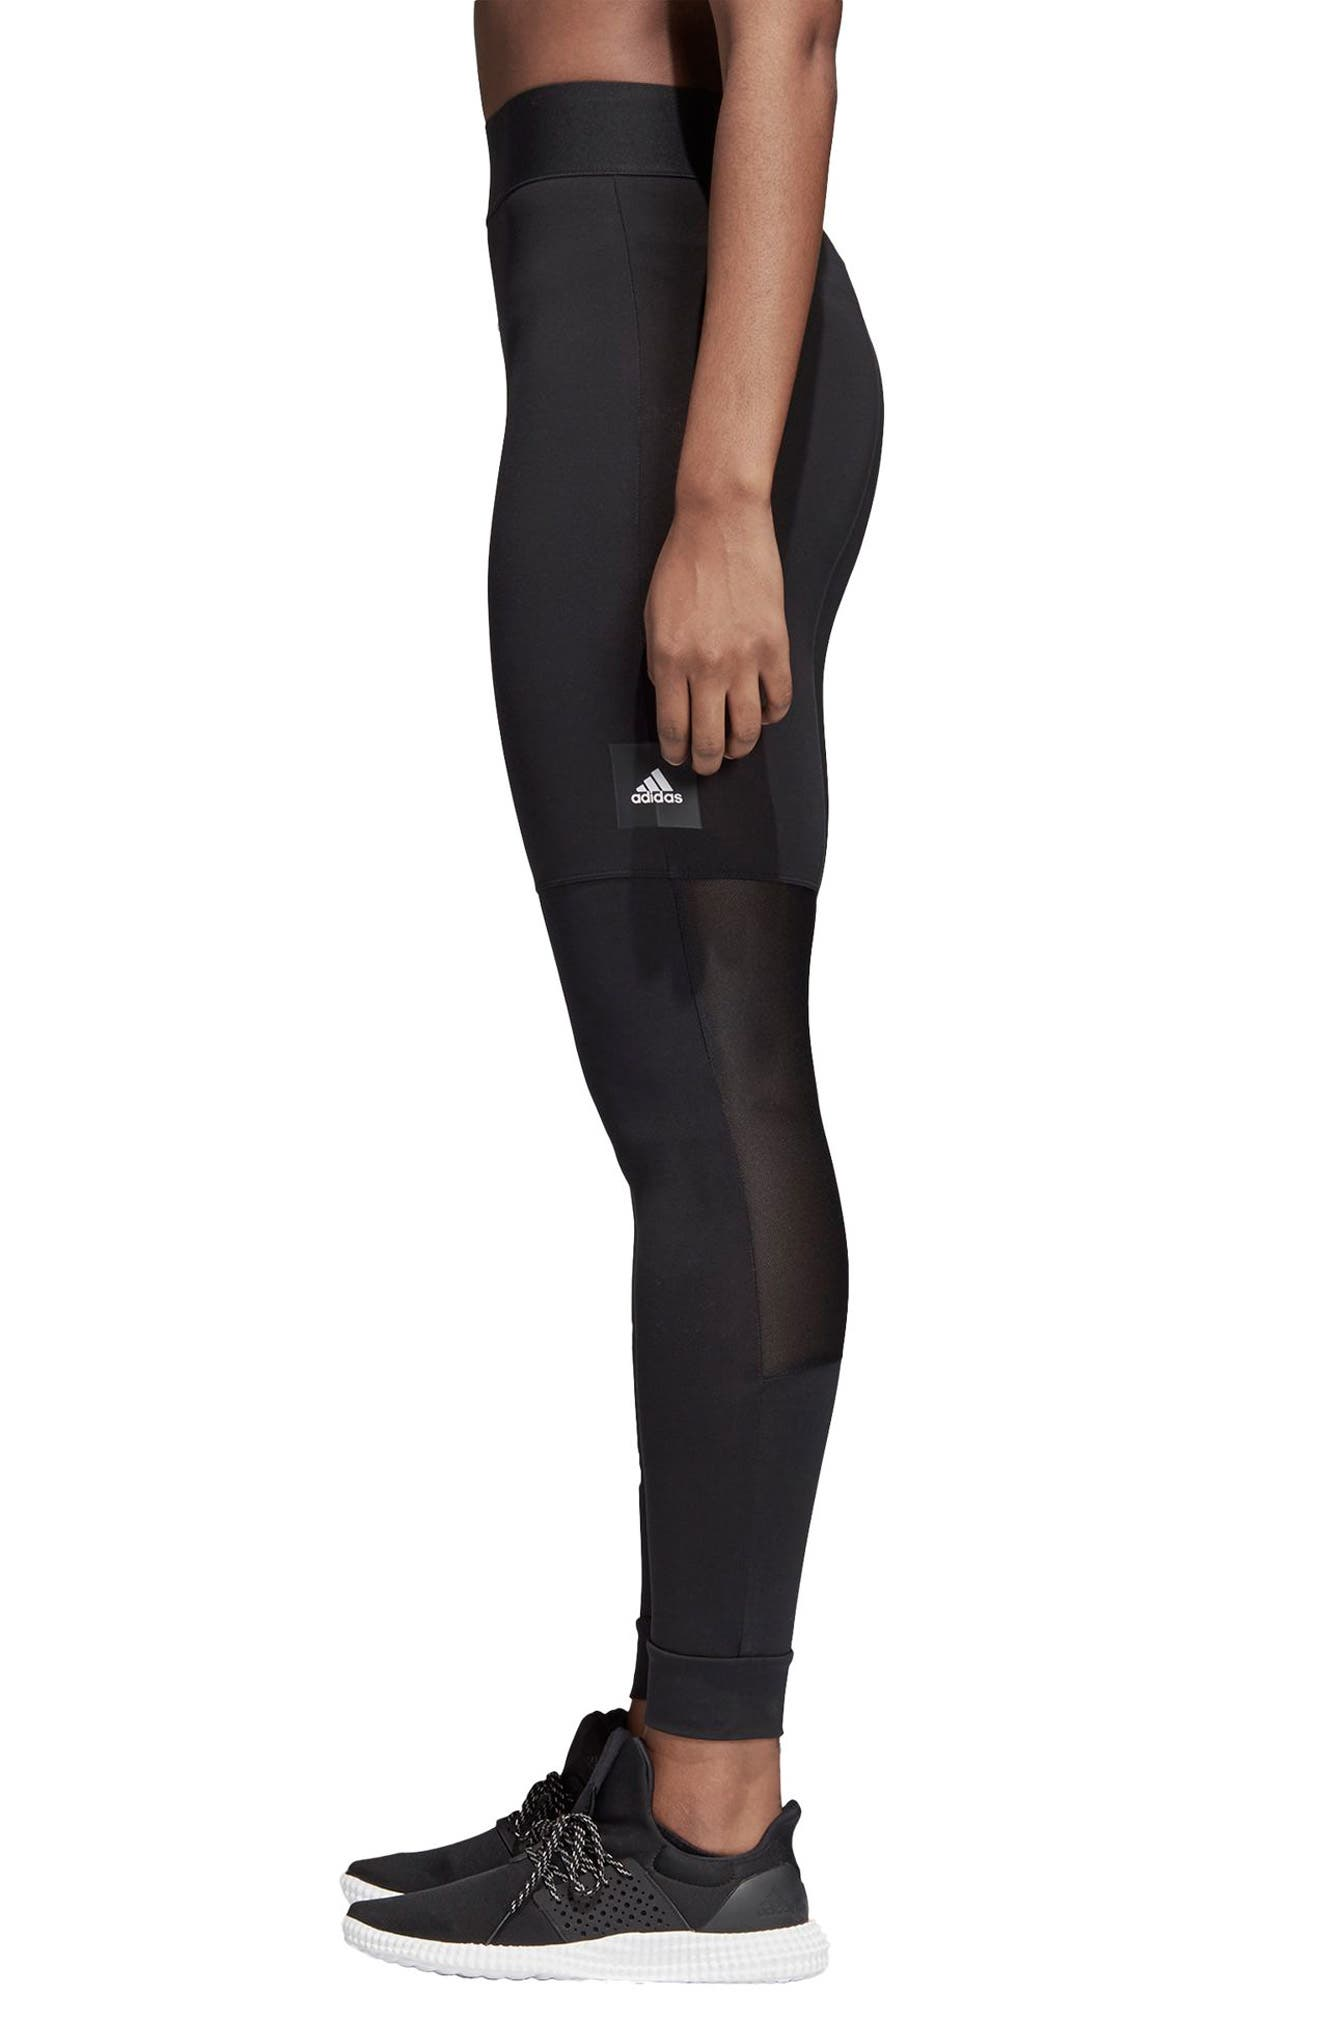 7/8 Leggings,                             Alternate thumbnail 3, color,                             Black